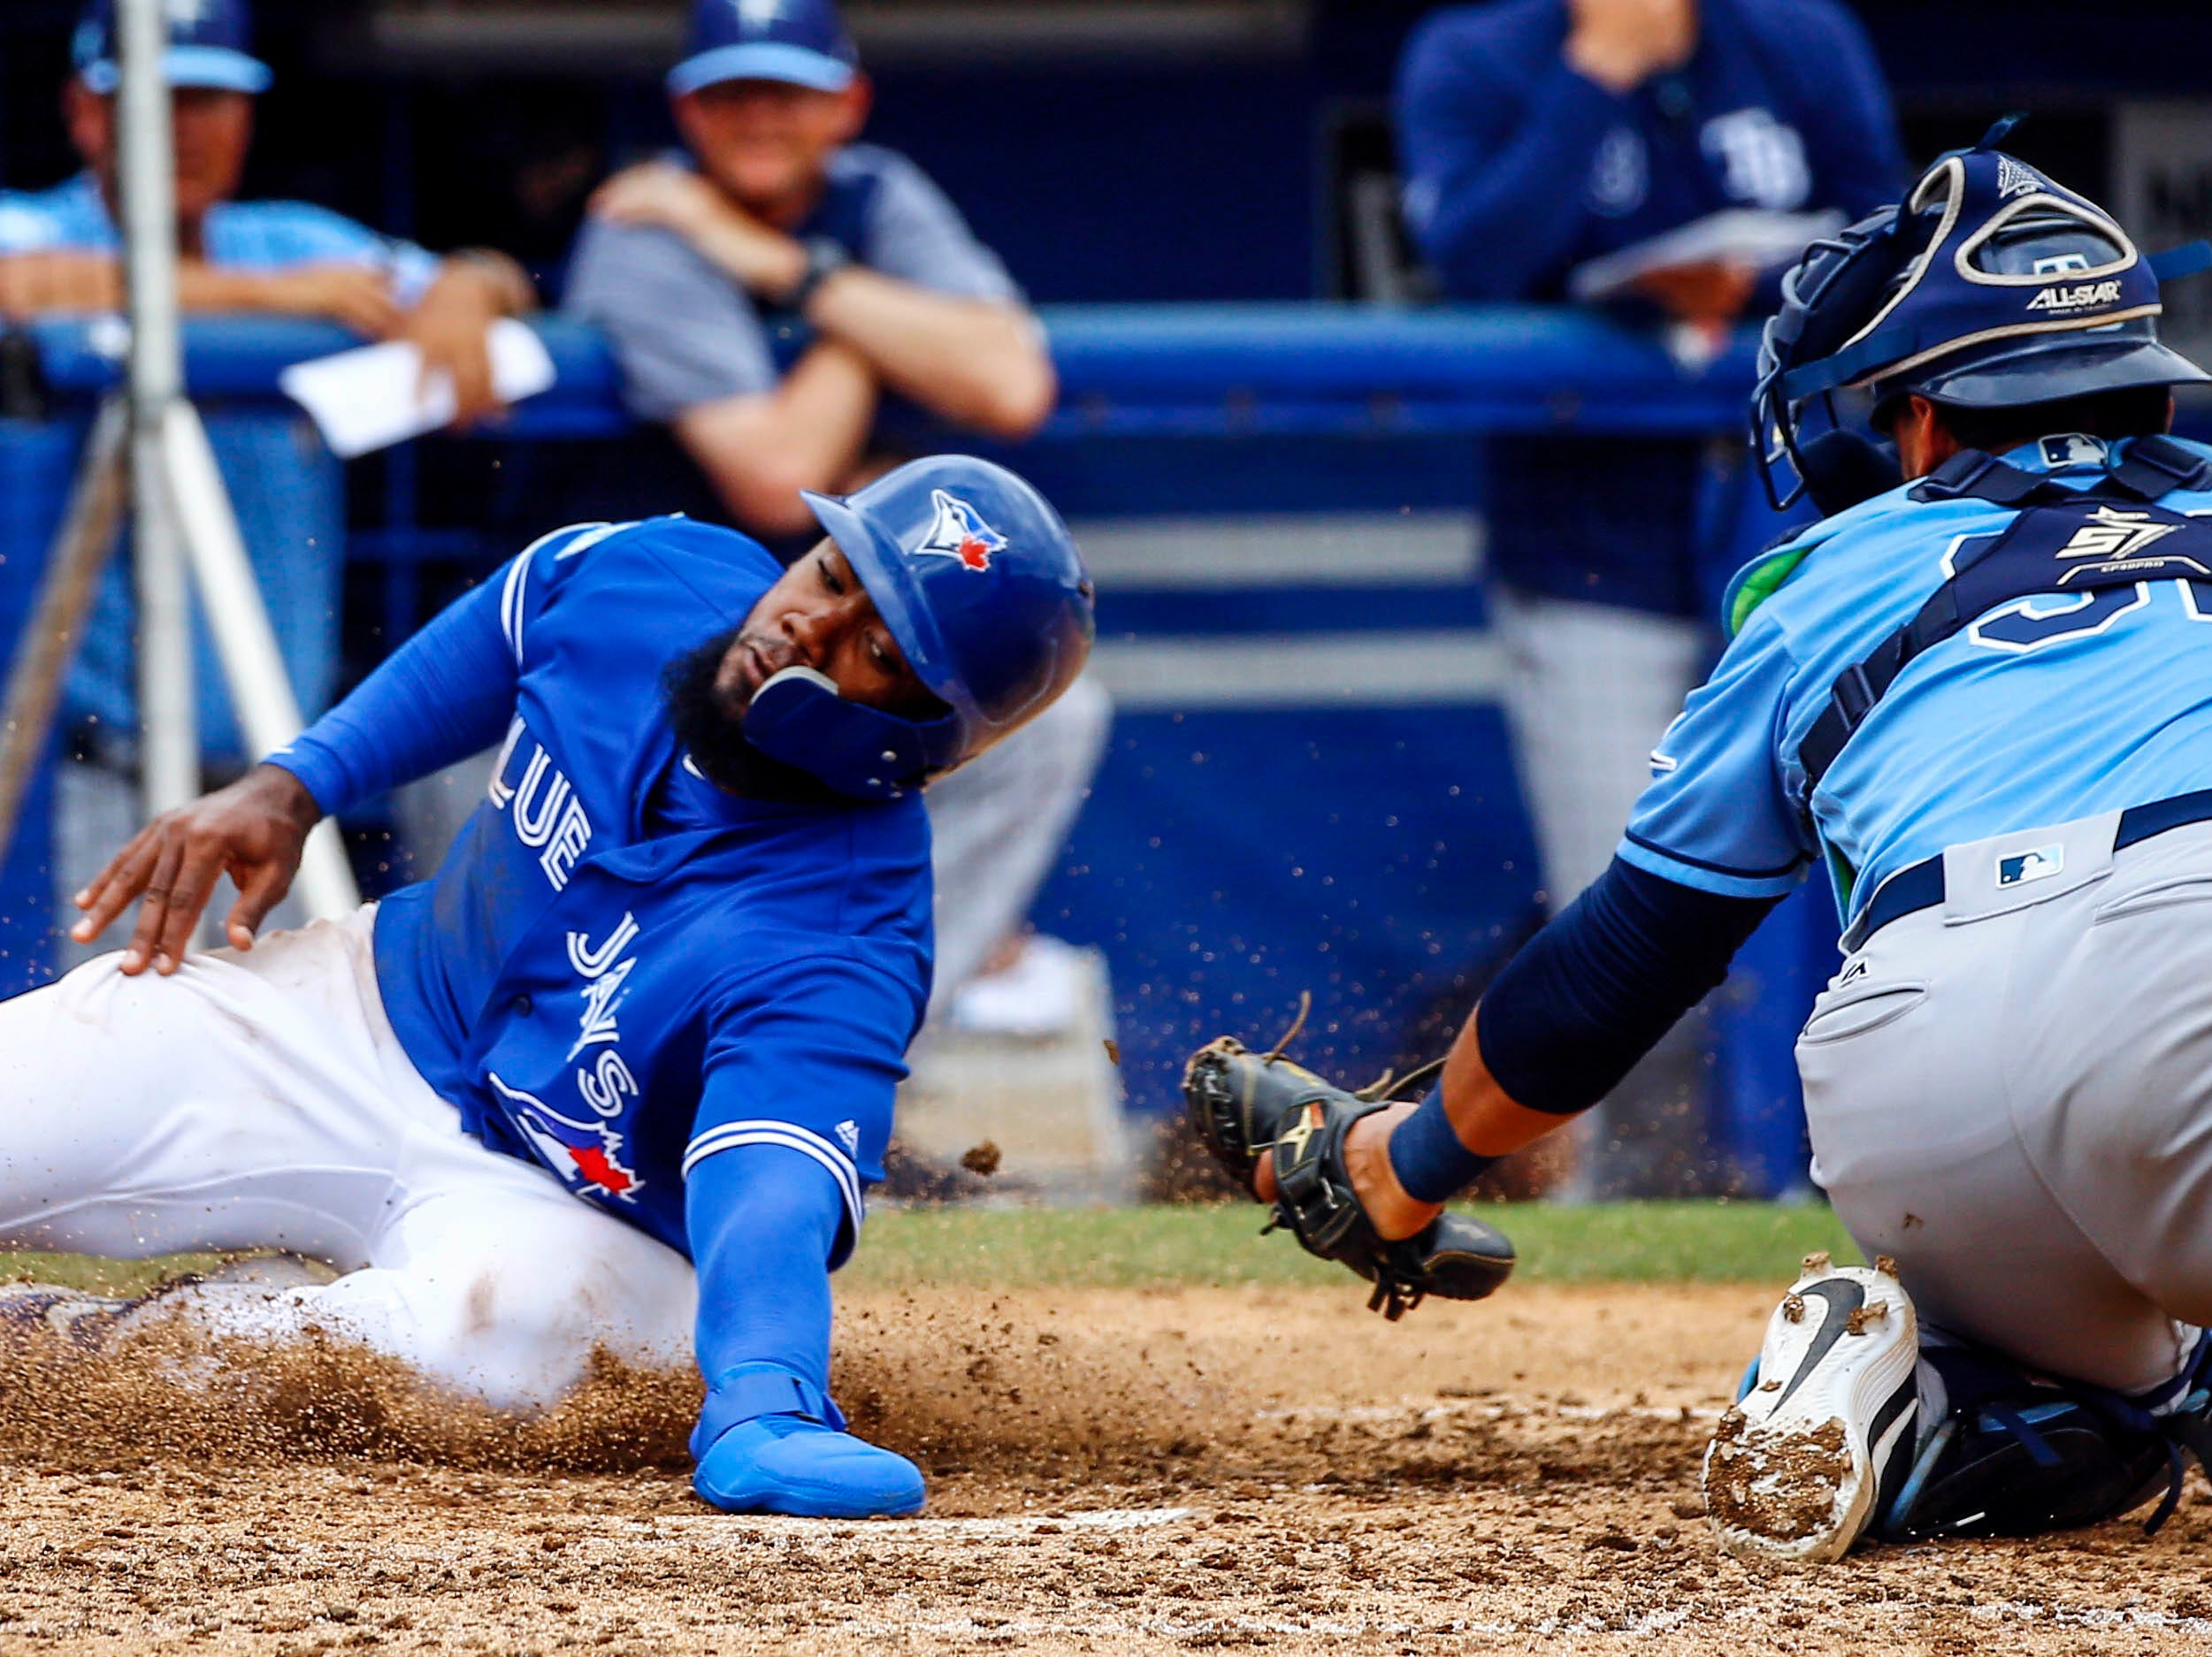 March 12: Blue Jays outfielder Teoscar Hernandez scores ahead of the tag from Rays catcher Rene Pinto.